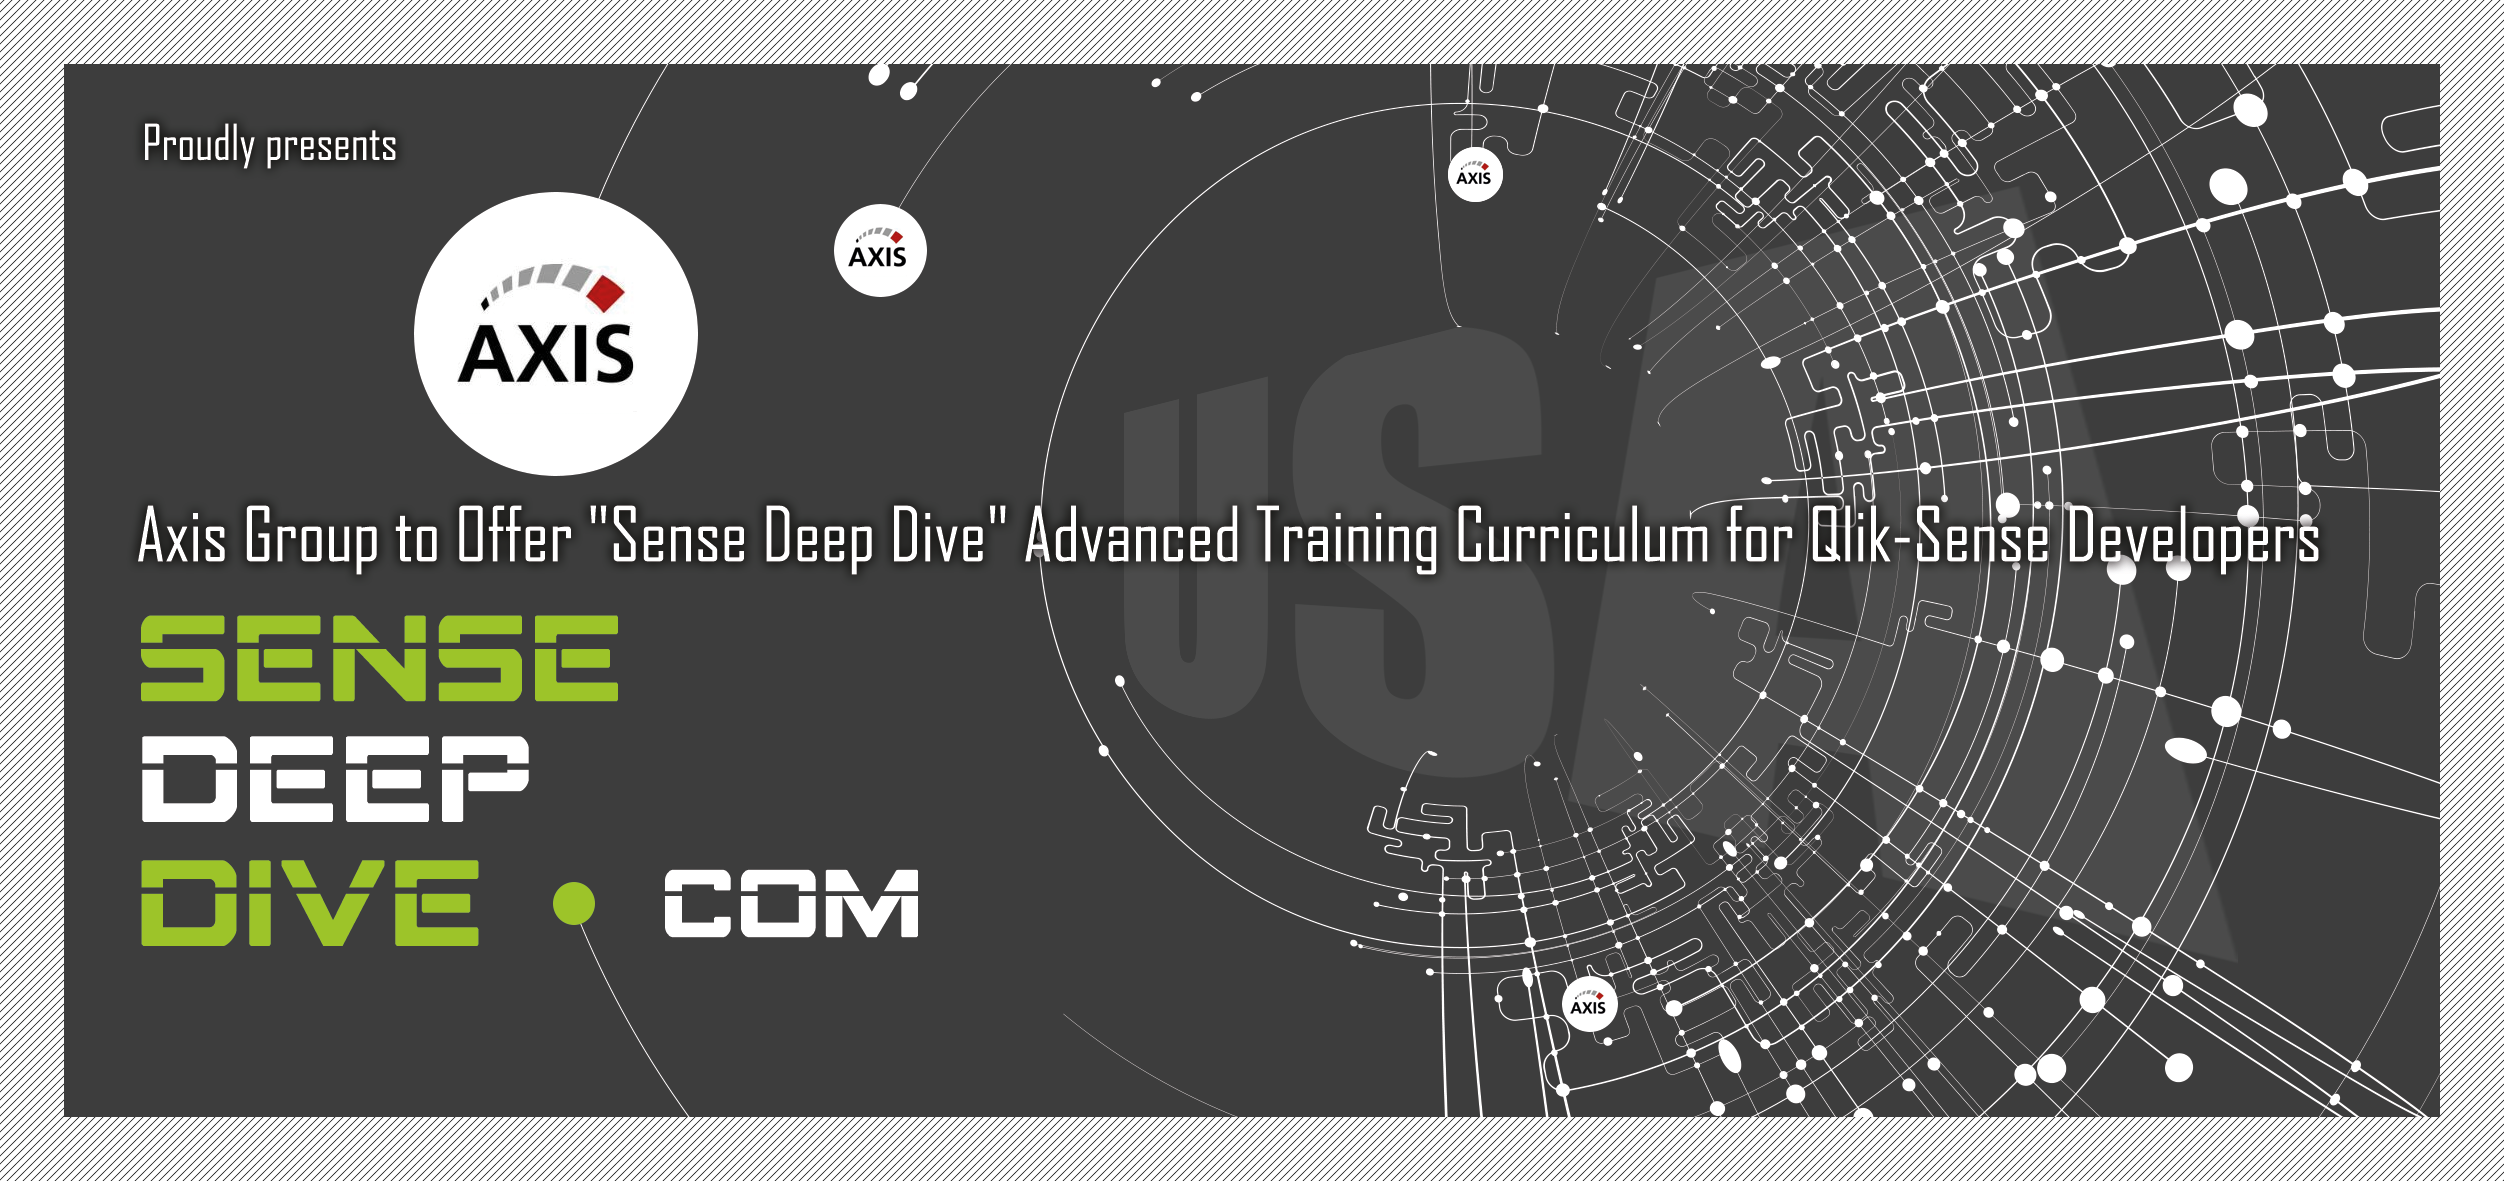 Axis Group to Offer 'Sense Deep Dive' Advanced Training Curriculum for Qlik-Sense Developers